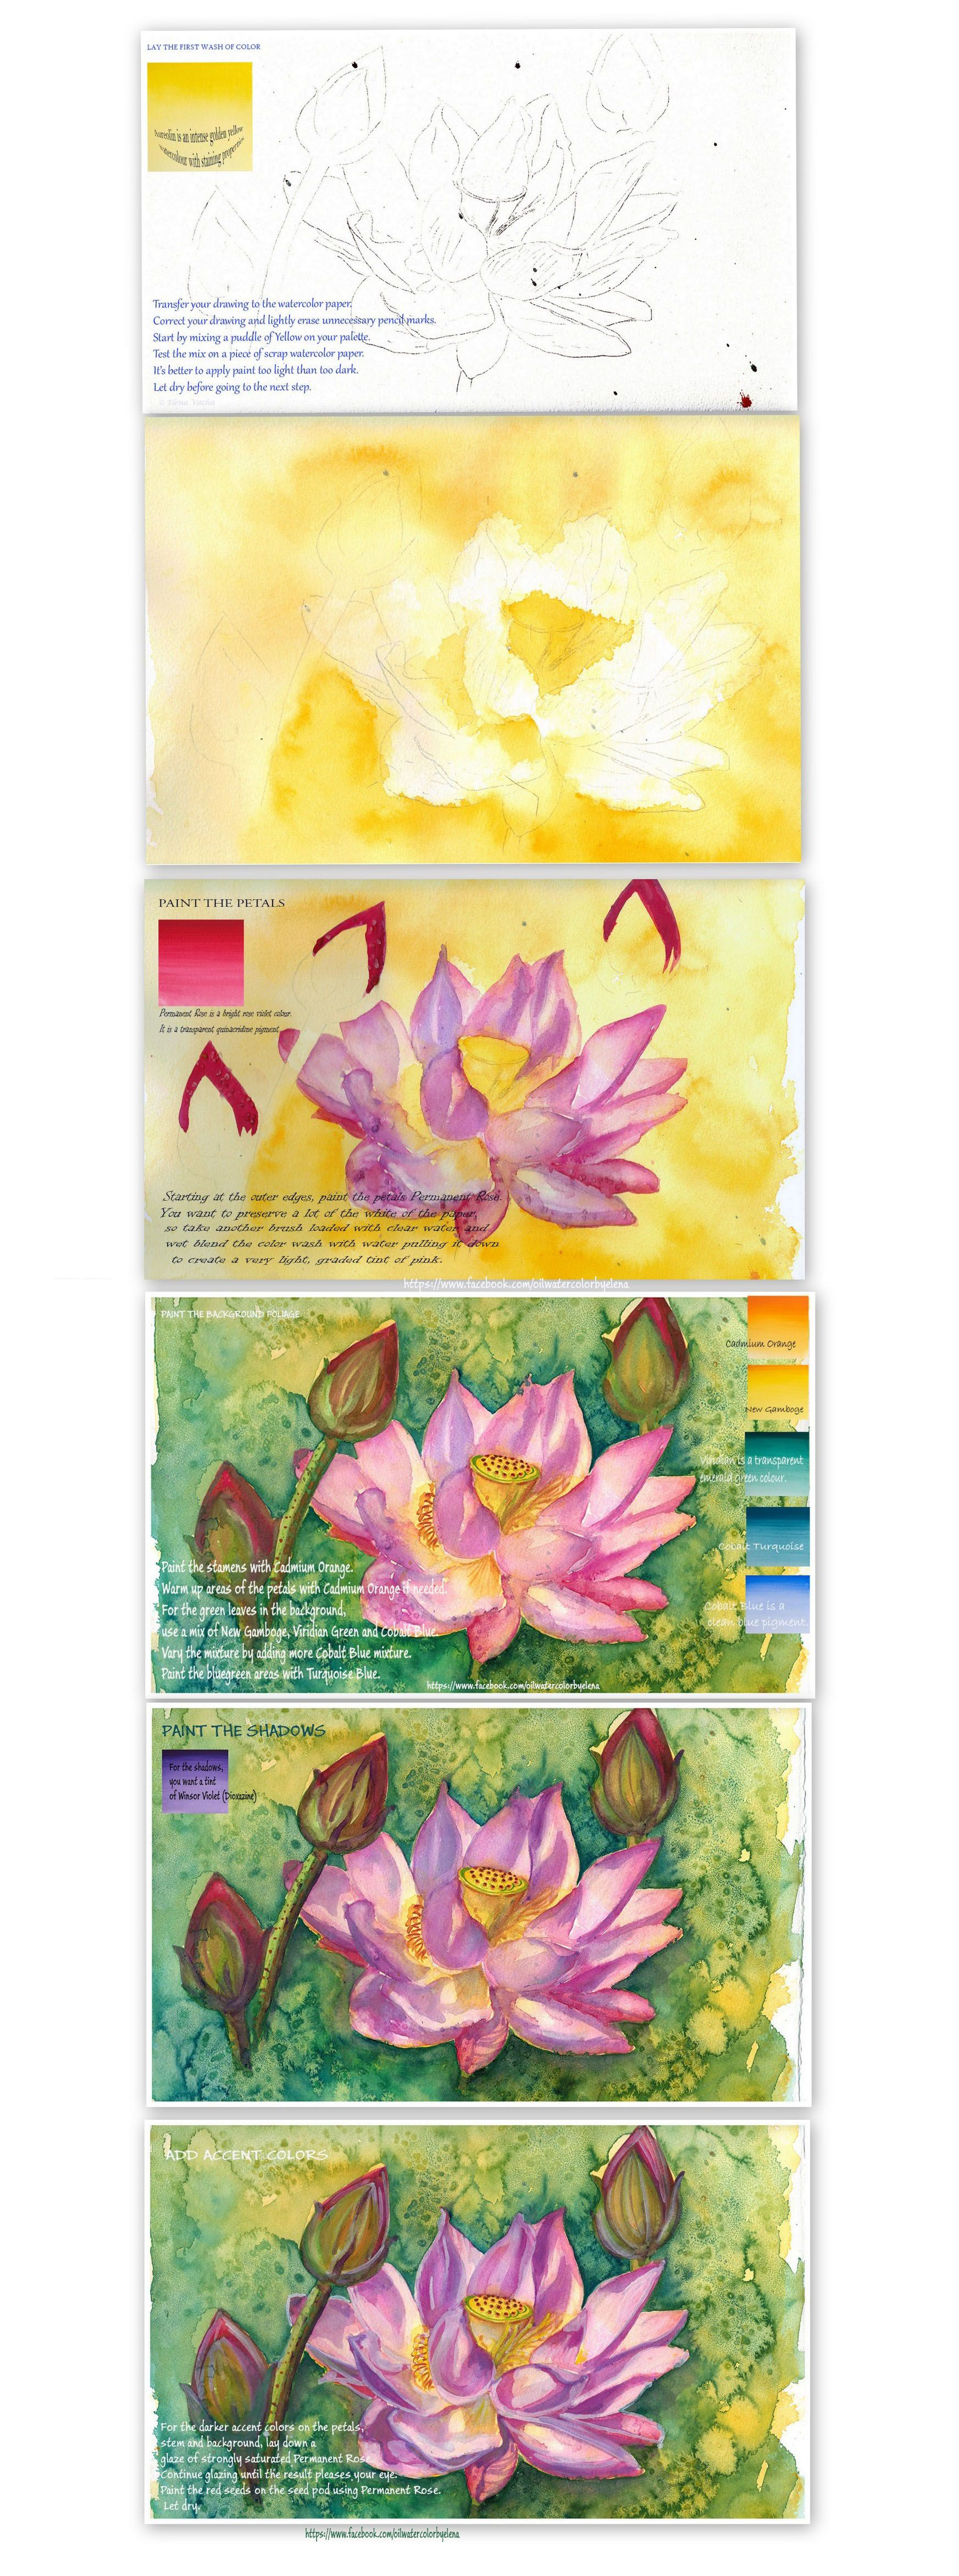 Fancy lotus flower tattoo meaning color vignette coloring page magnificent lotus flower tattoo meaning color photo coloring page izmirmasajfo